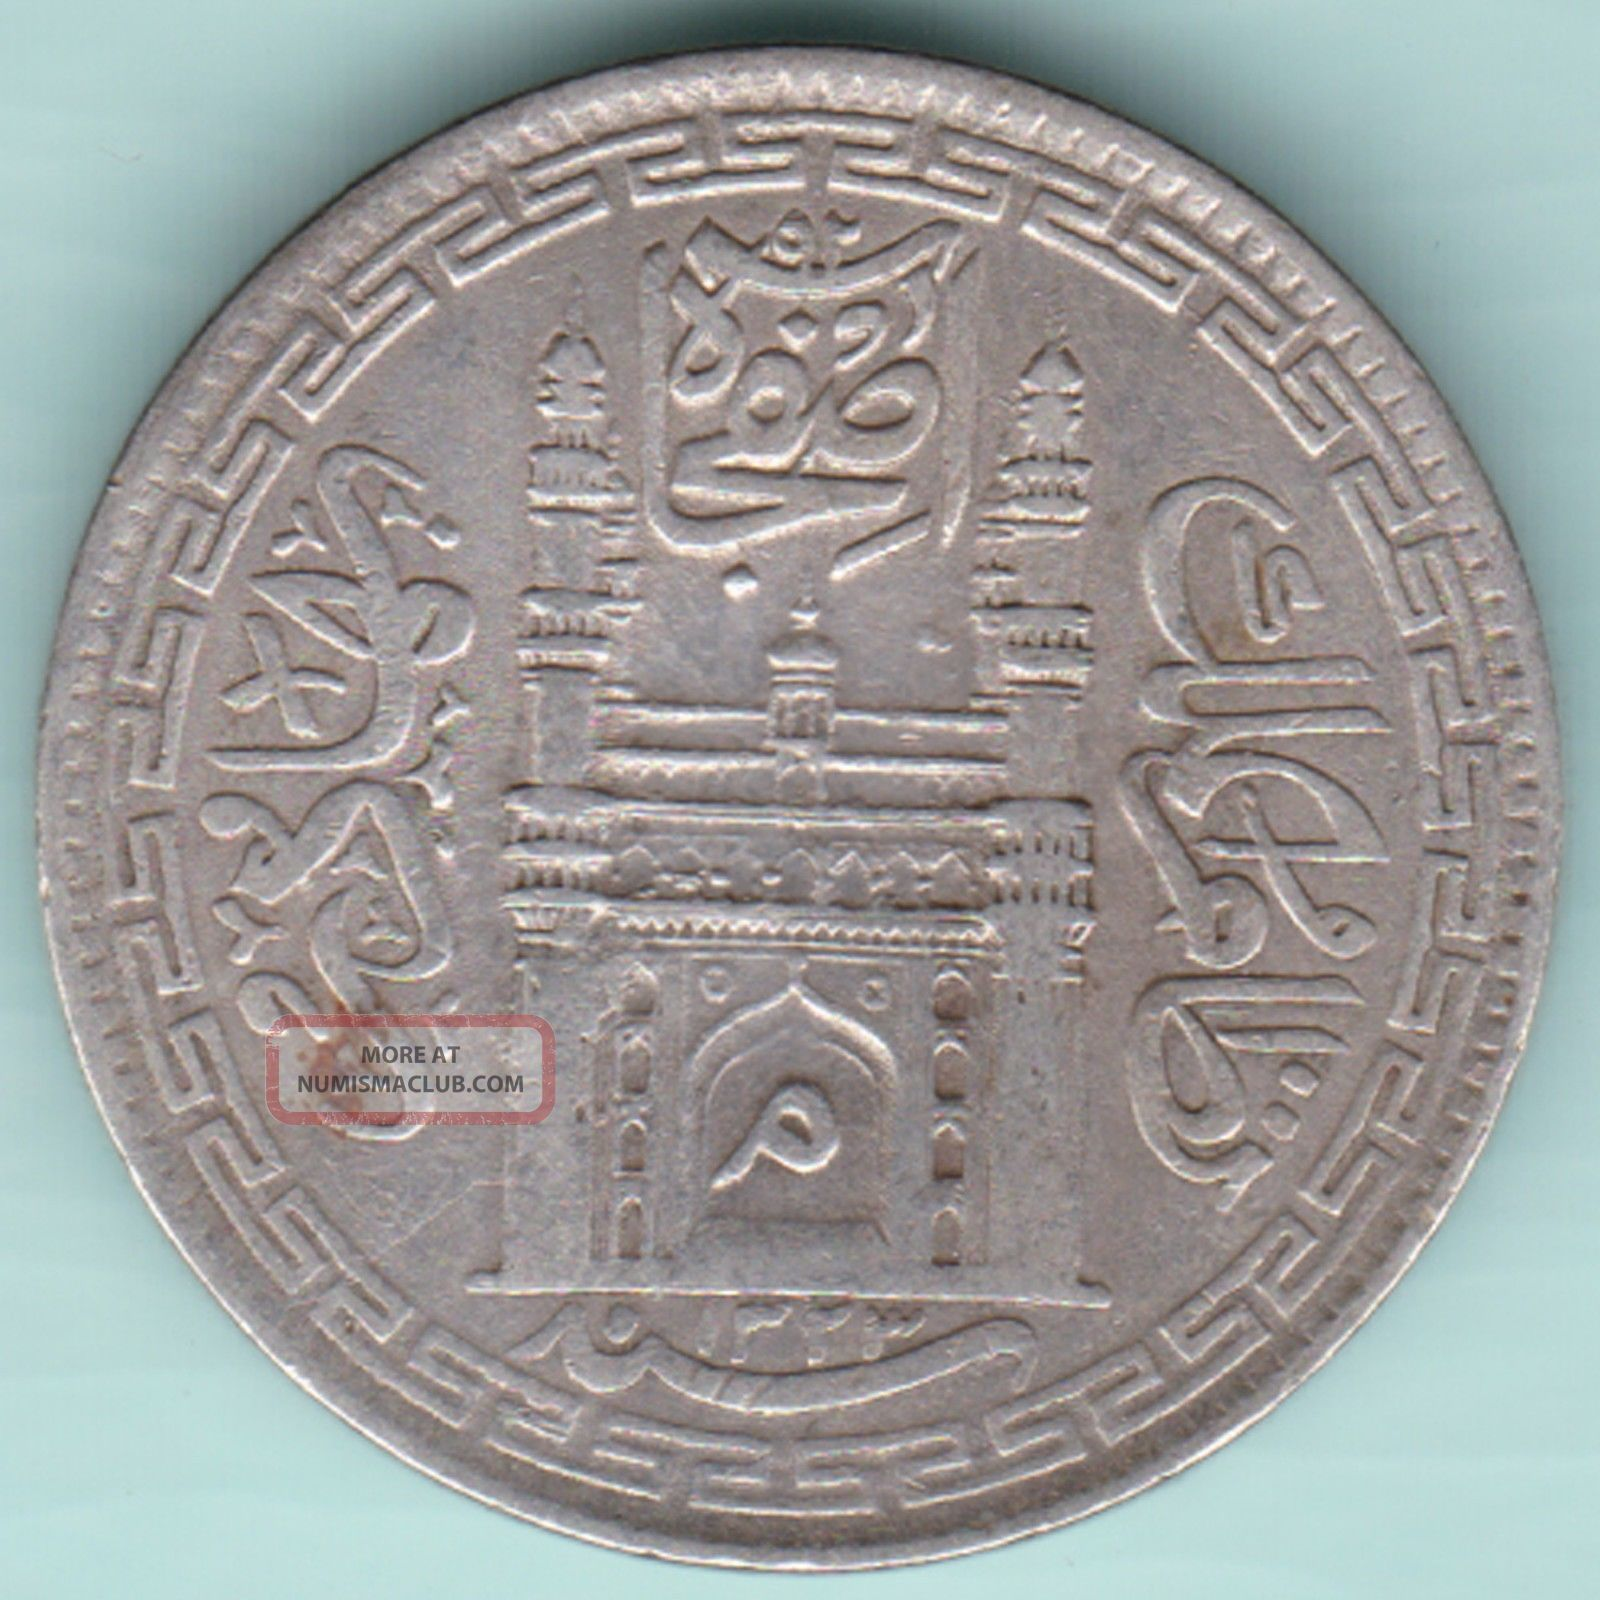 Hyderabad State - Ah 1323 - Mim On Doorway - One Rupee - Rare Silver Coin India photo